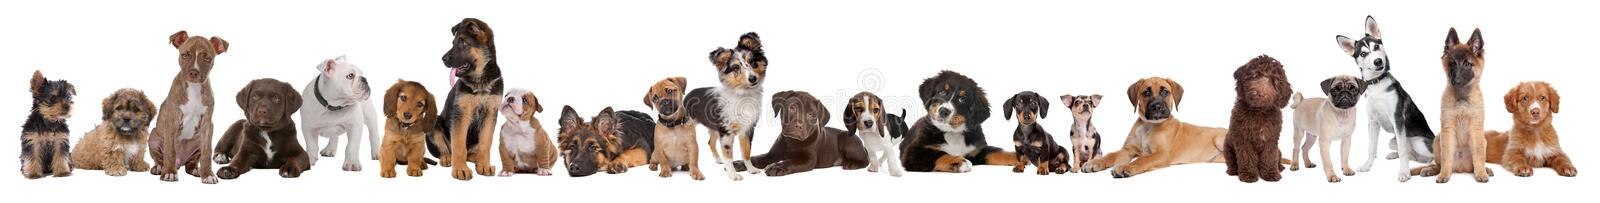 22 puppy dogs in a row royalty free stock image